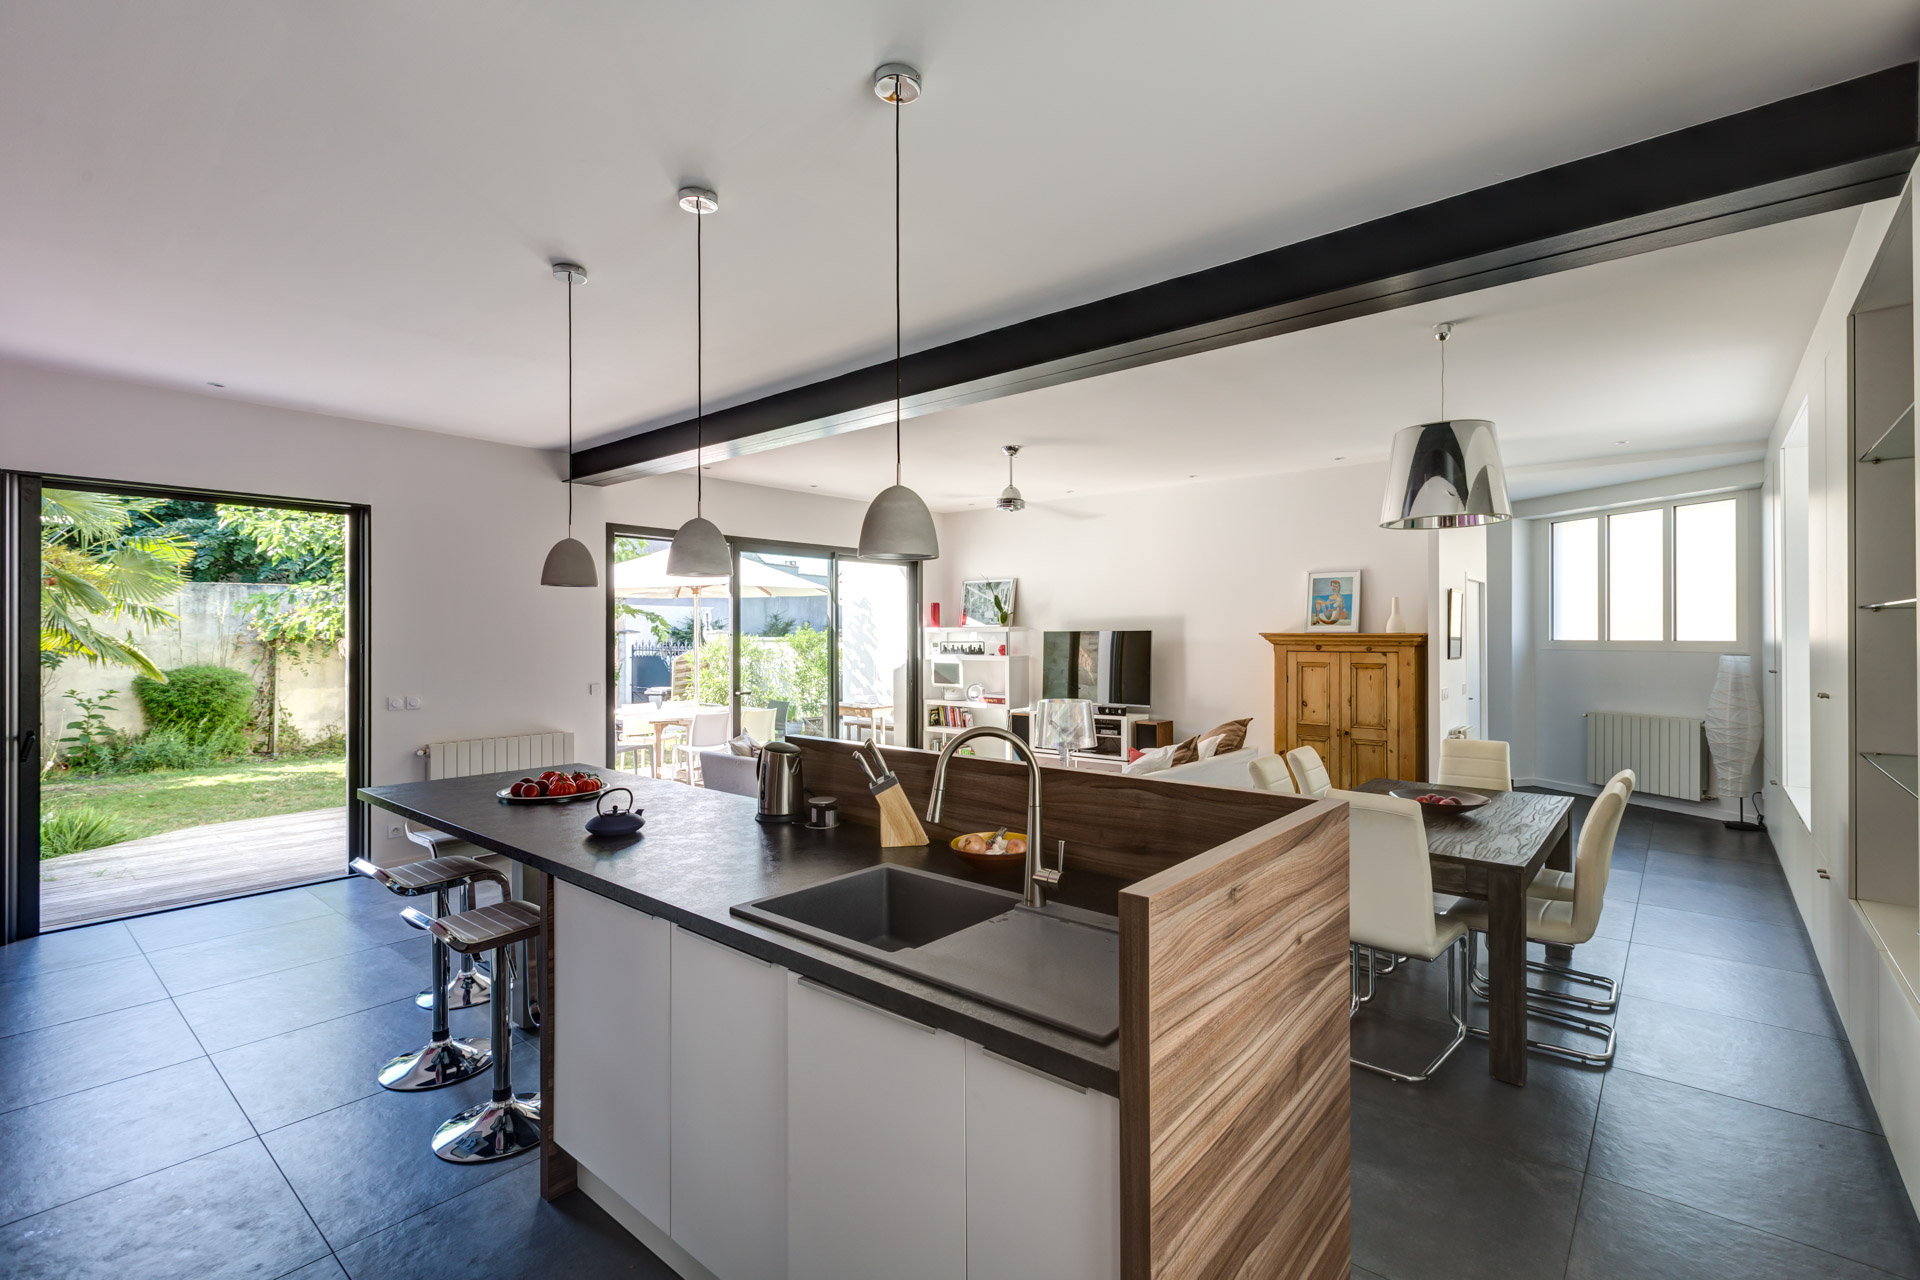 Maison familiale de ville sur jardin expression for Interieur de maison contemporaine